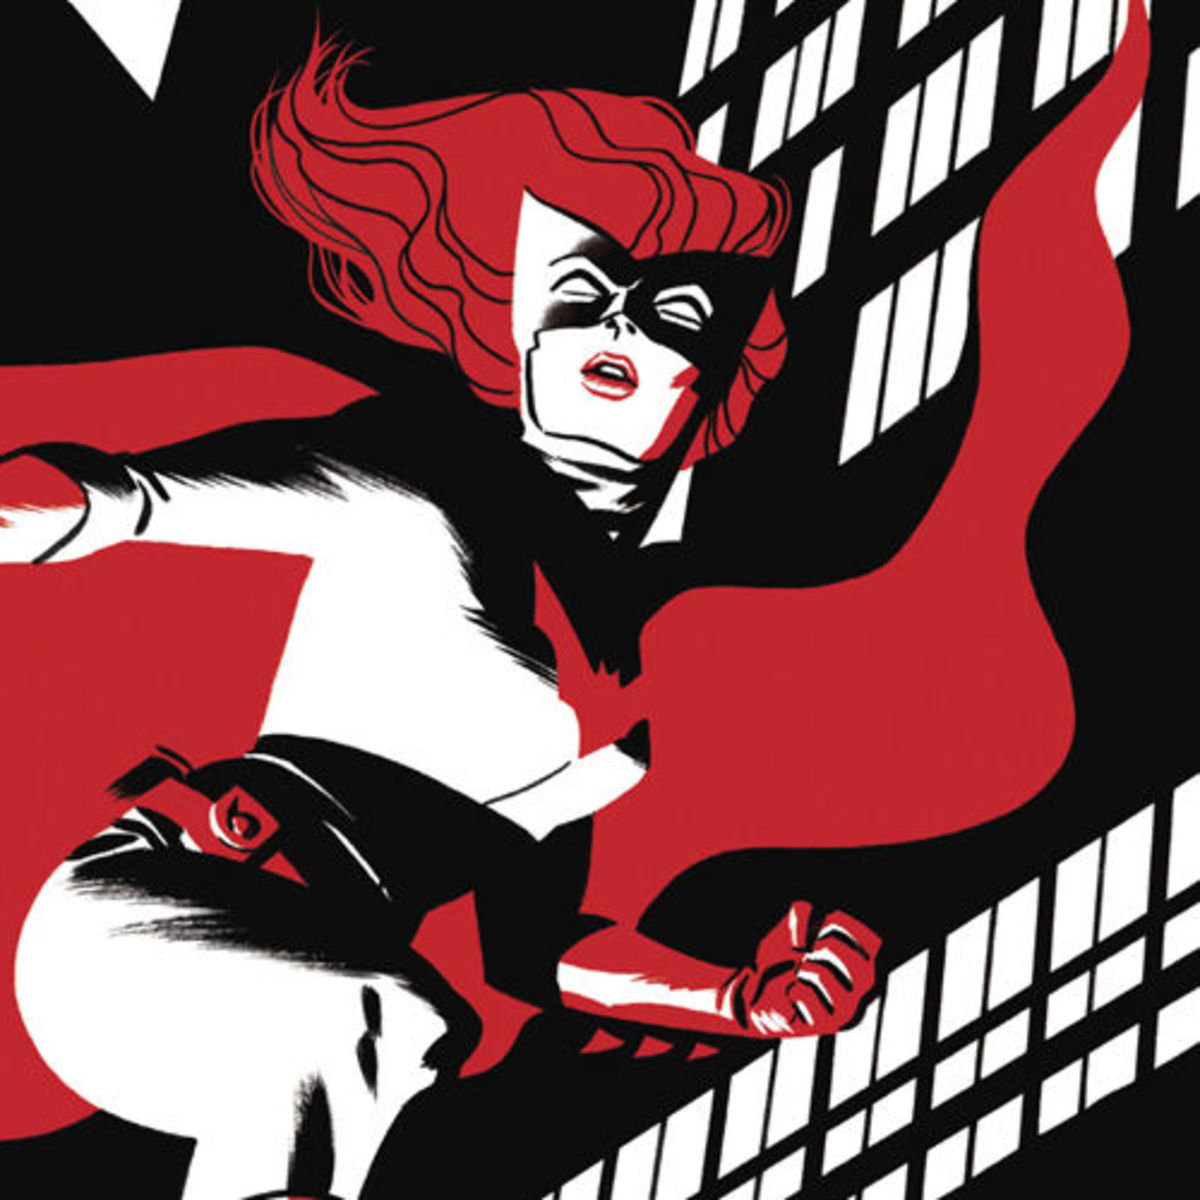 CW's Batwoman Seeking Out Actress, of Any Ethnicity, For Title Role